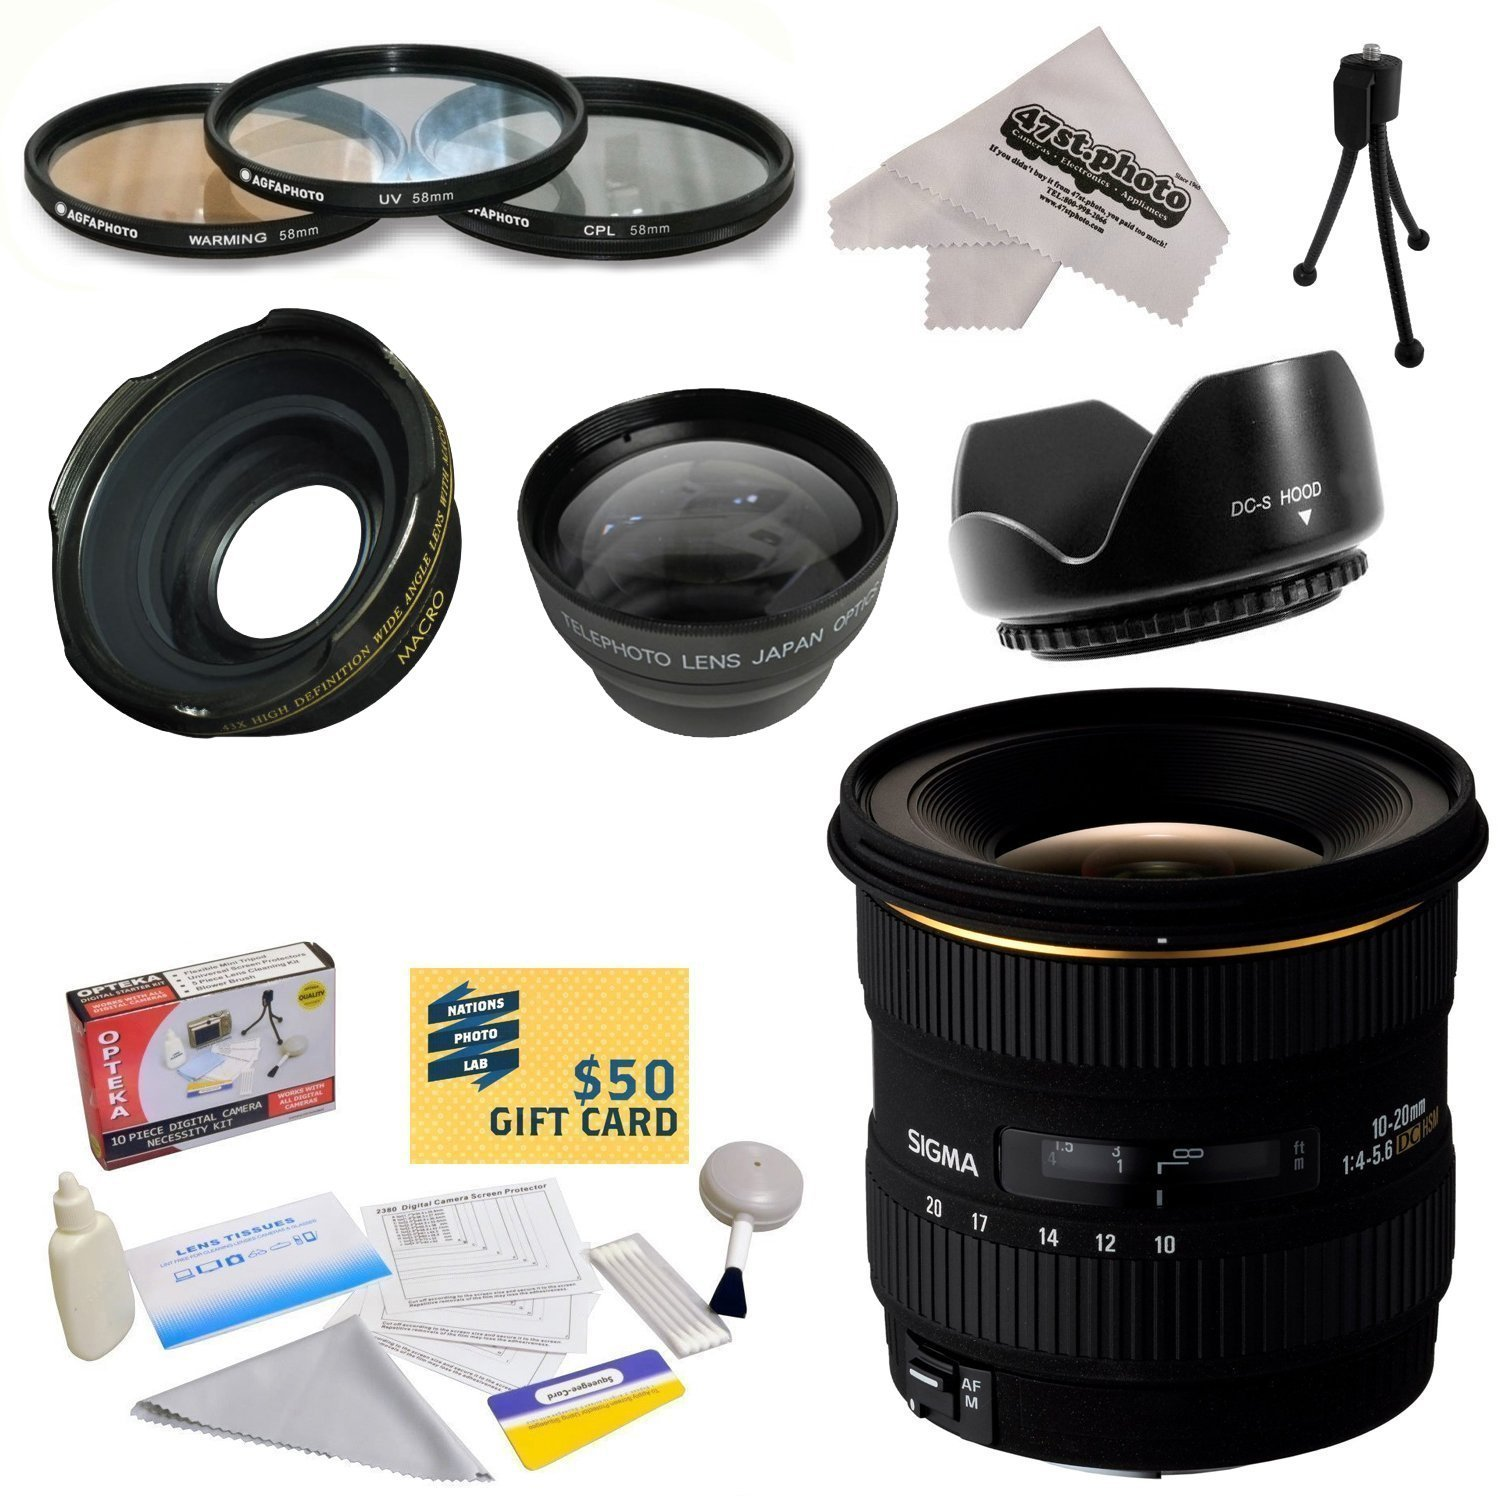 Sigma 10-20mm f/4-5.6 EX DC HSM Autofocus Lens For The Nikon D1 D1X D1H D2X D2Xs D2H D2Hs D3 D3X D3s D100 D200 D300 D300S D700 D7000 D7100 D3000 D3100 D3200 D5000 D5100 D5200 D5300 D40 D40X D50 D60 D70 D90 D80 DSLR Cameras Includes 3 Year Extended Lens Wa